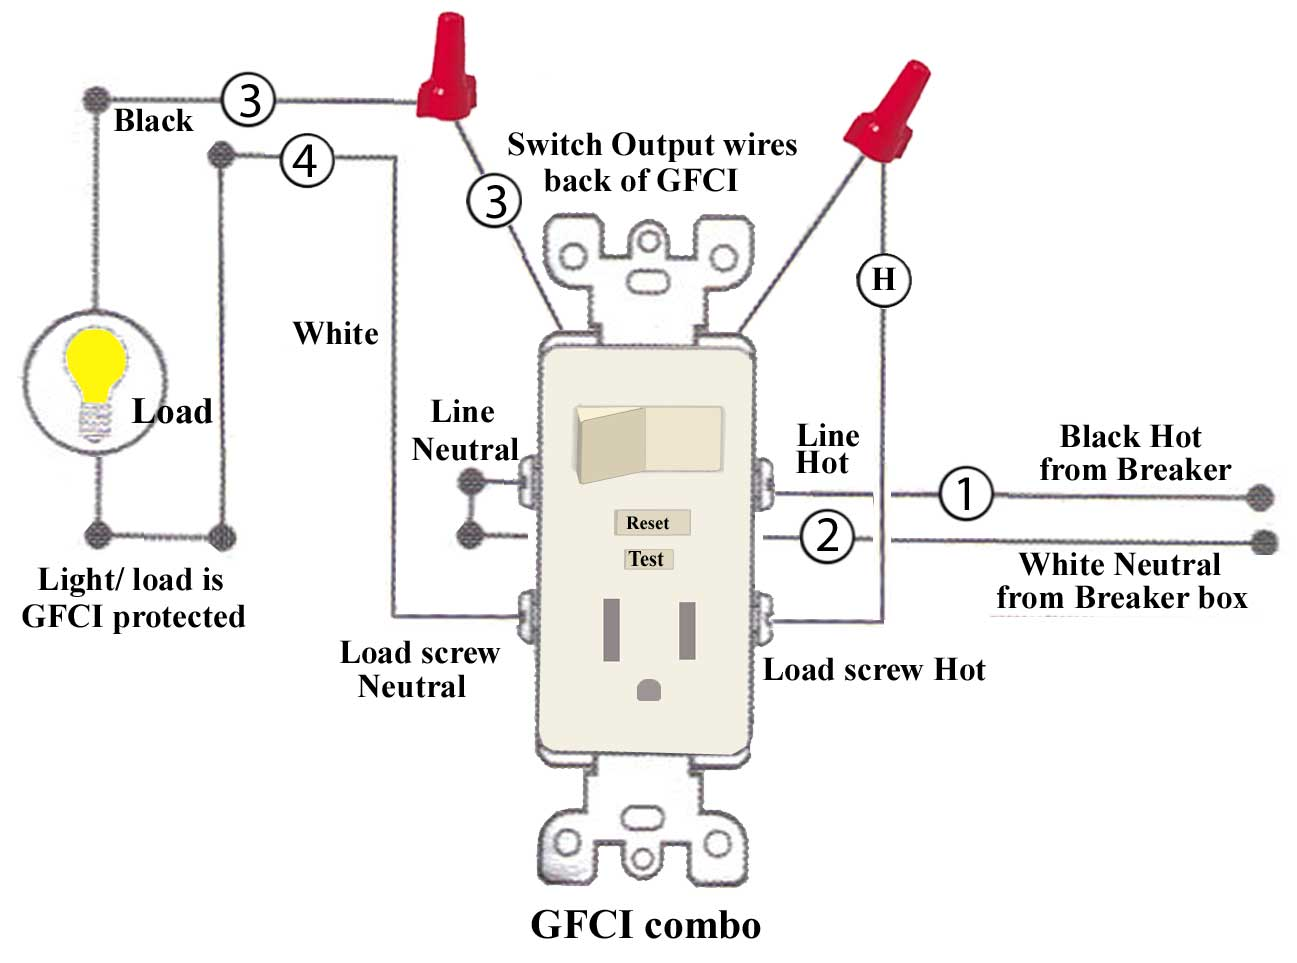 Wiring Ground Fault Circuit Interrupter Switch Diagram Bined Arc And On Gfci With How To Install Troubleshoot Manufacturers